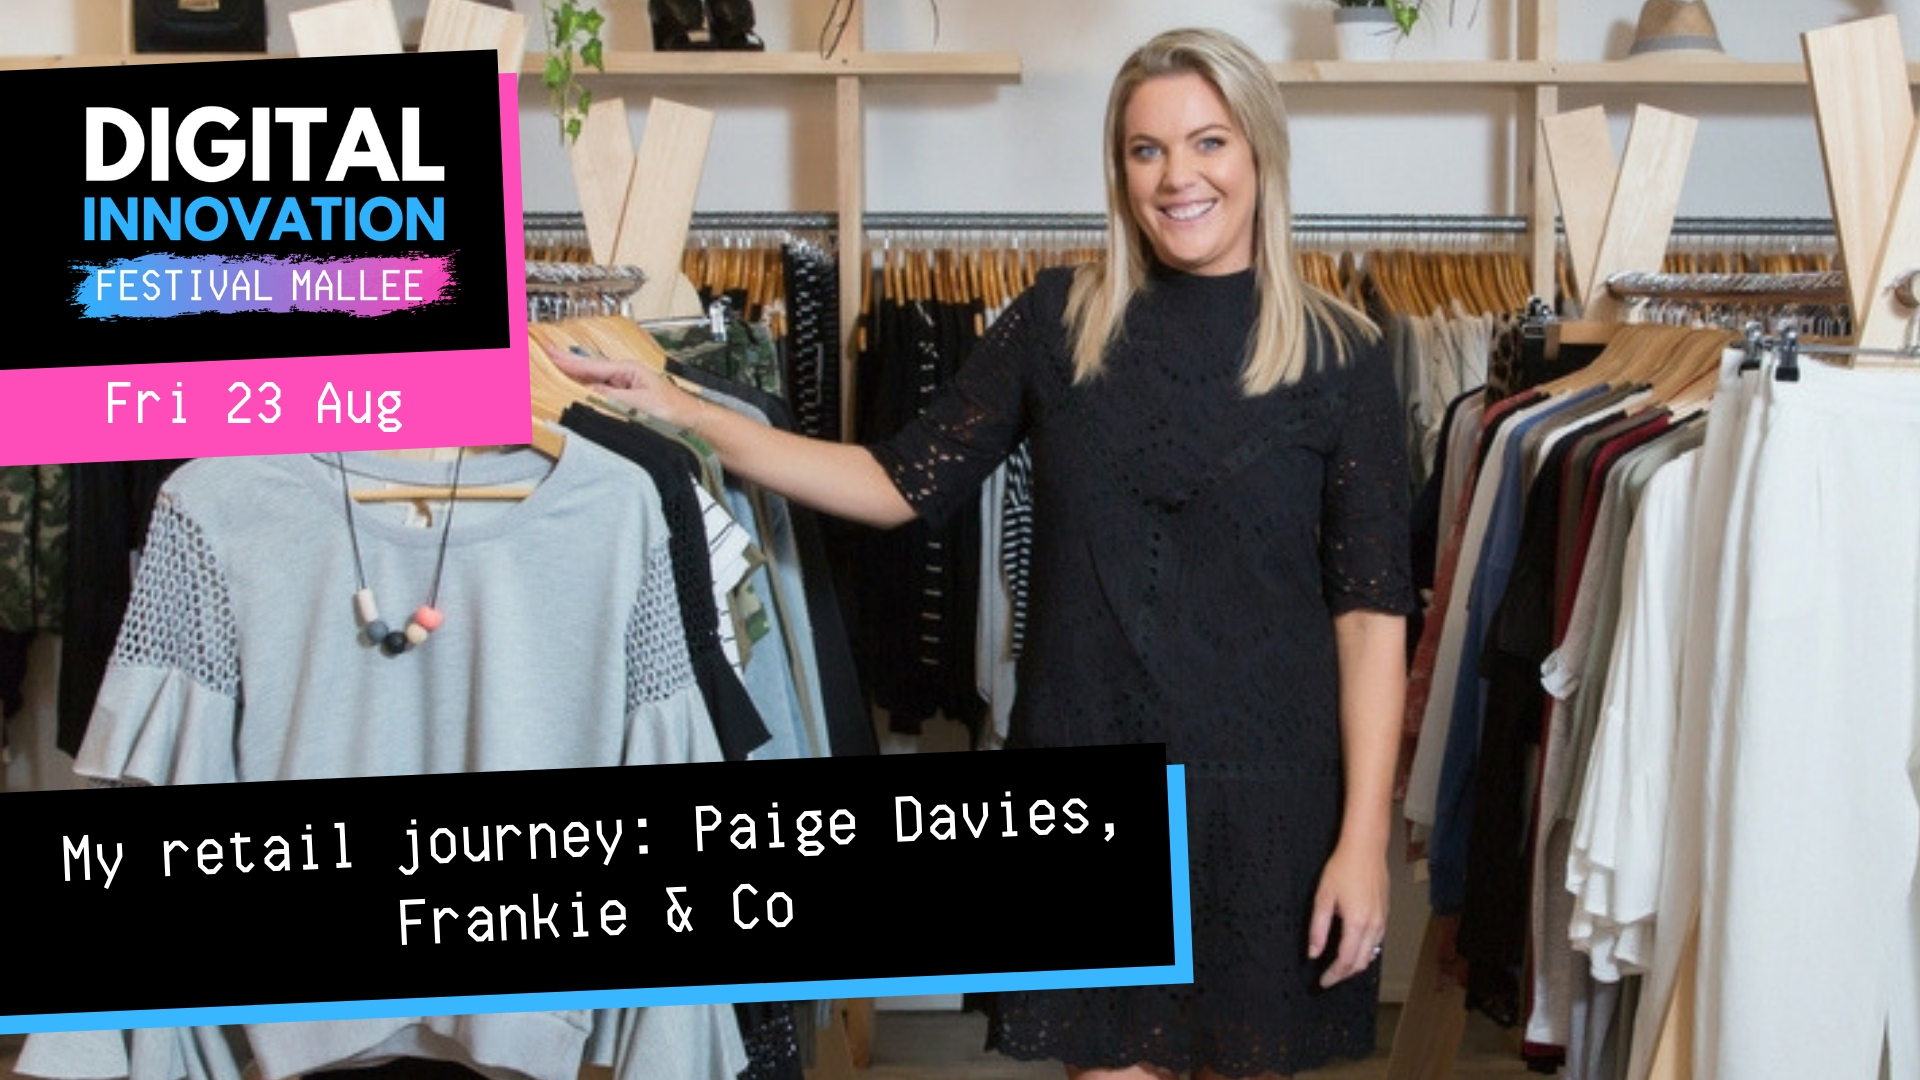 DIF FB event cover - Paige journey.jpg